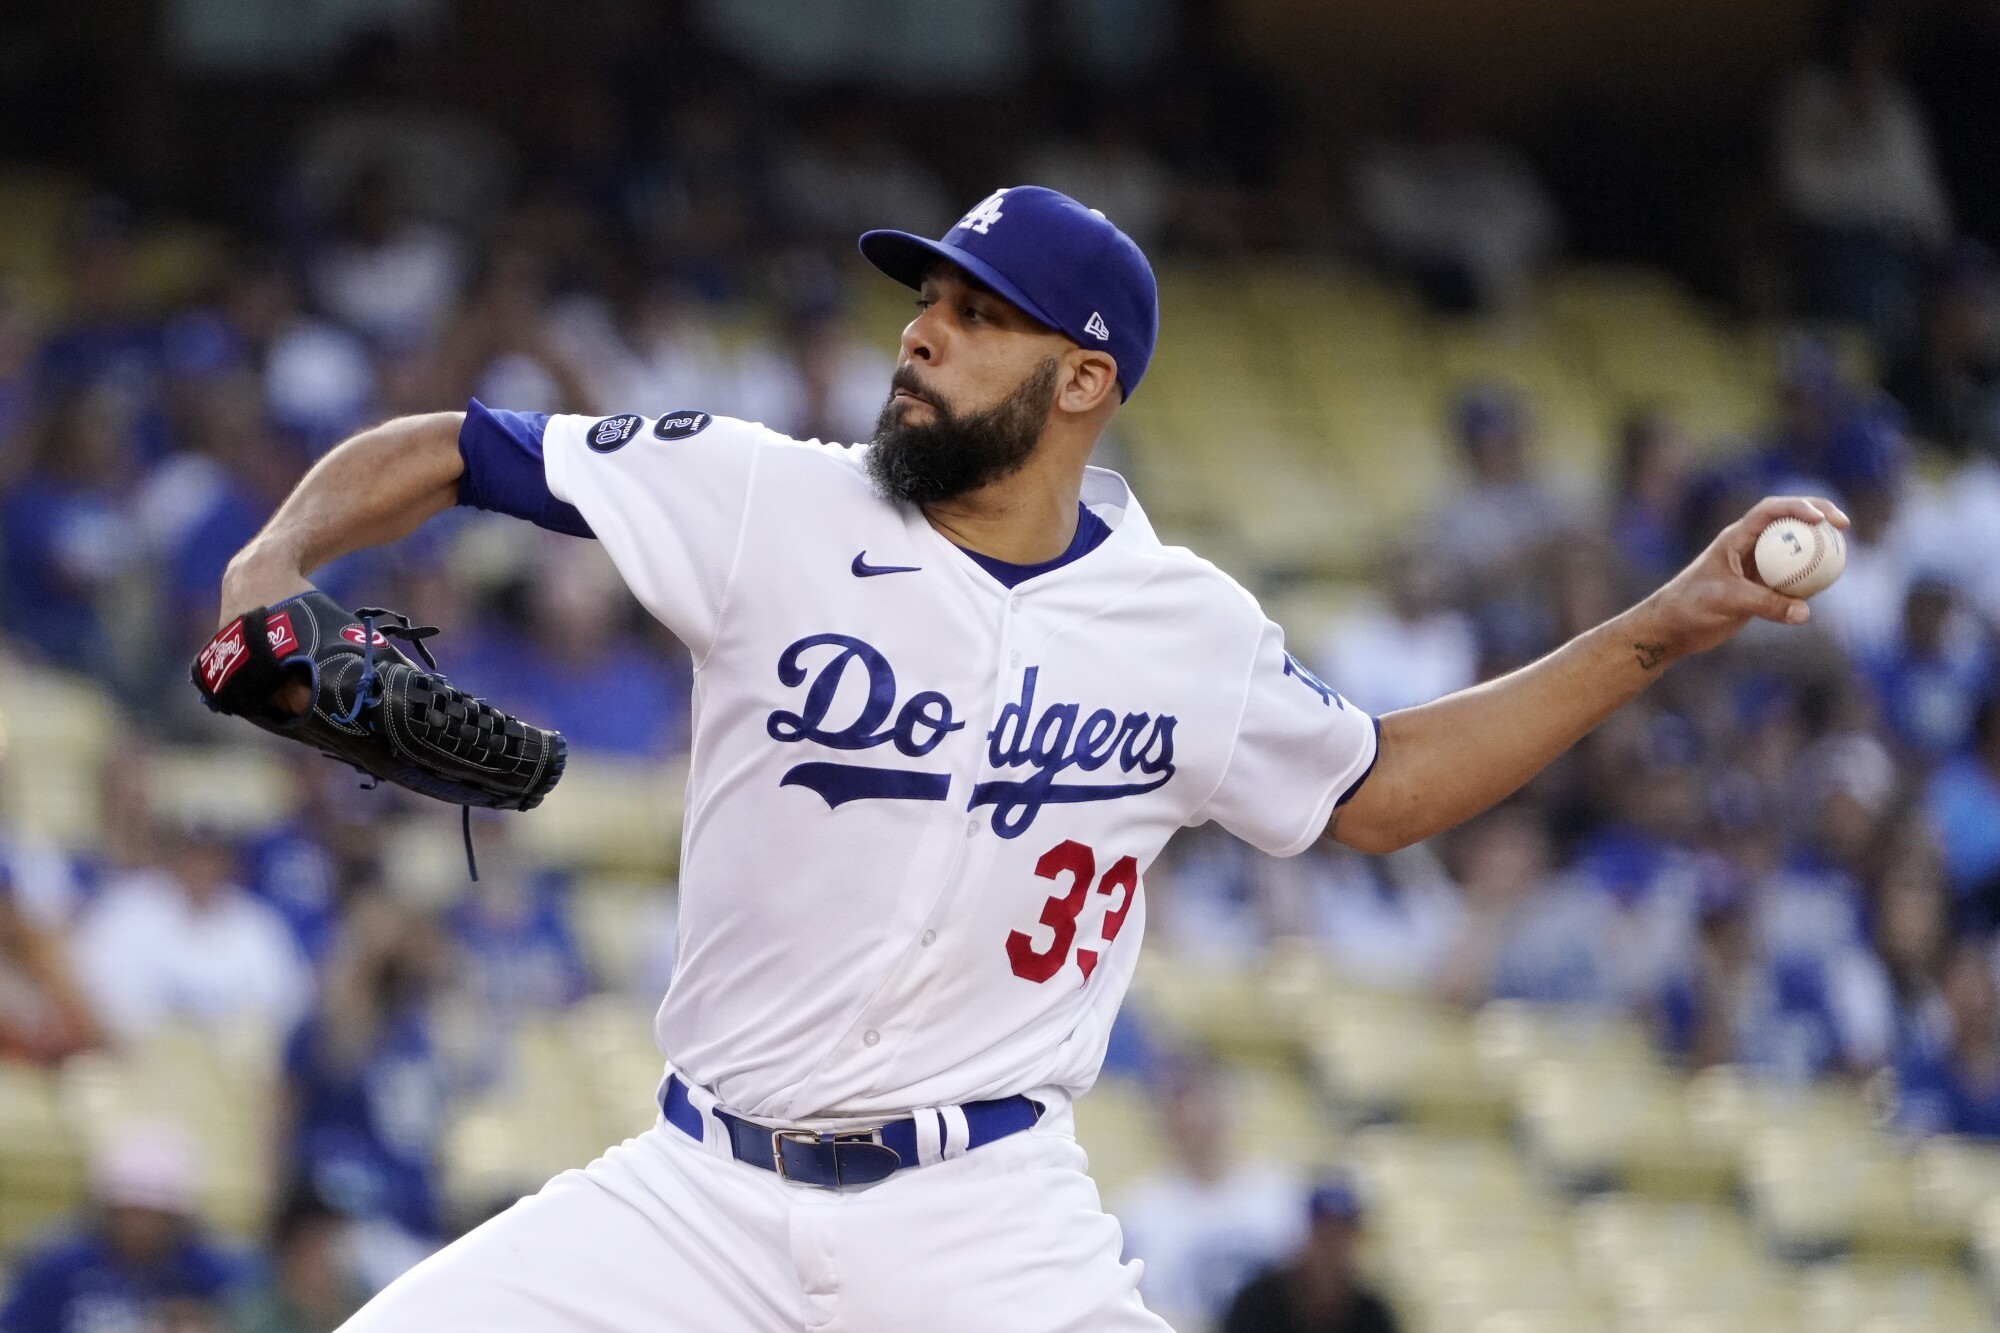 David Price starts for the Dodgers on Thursday.